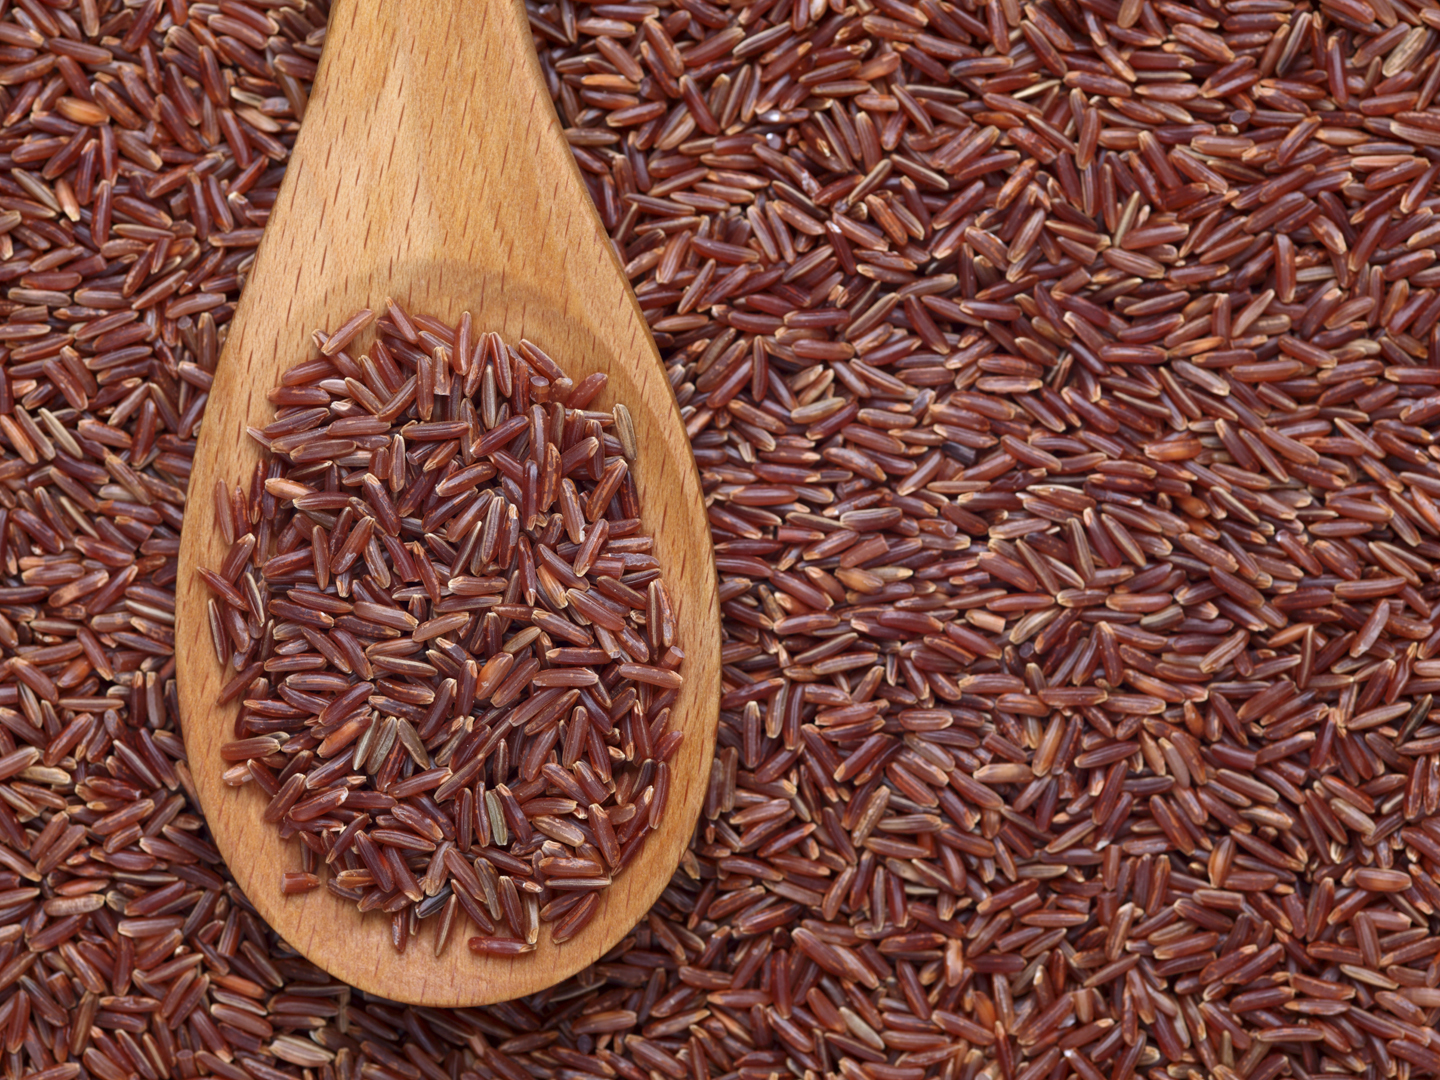 Red Rice Yeast Instead of Statins?- Dr. Weil